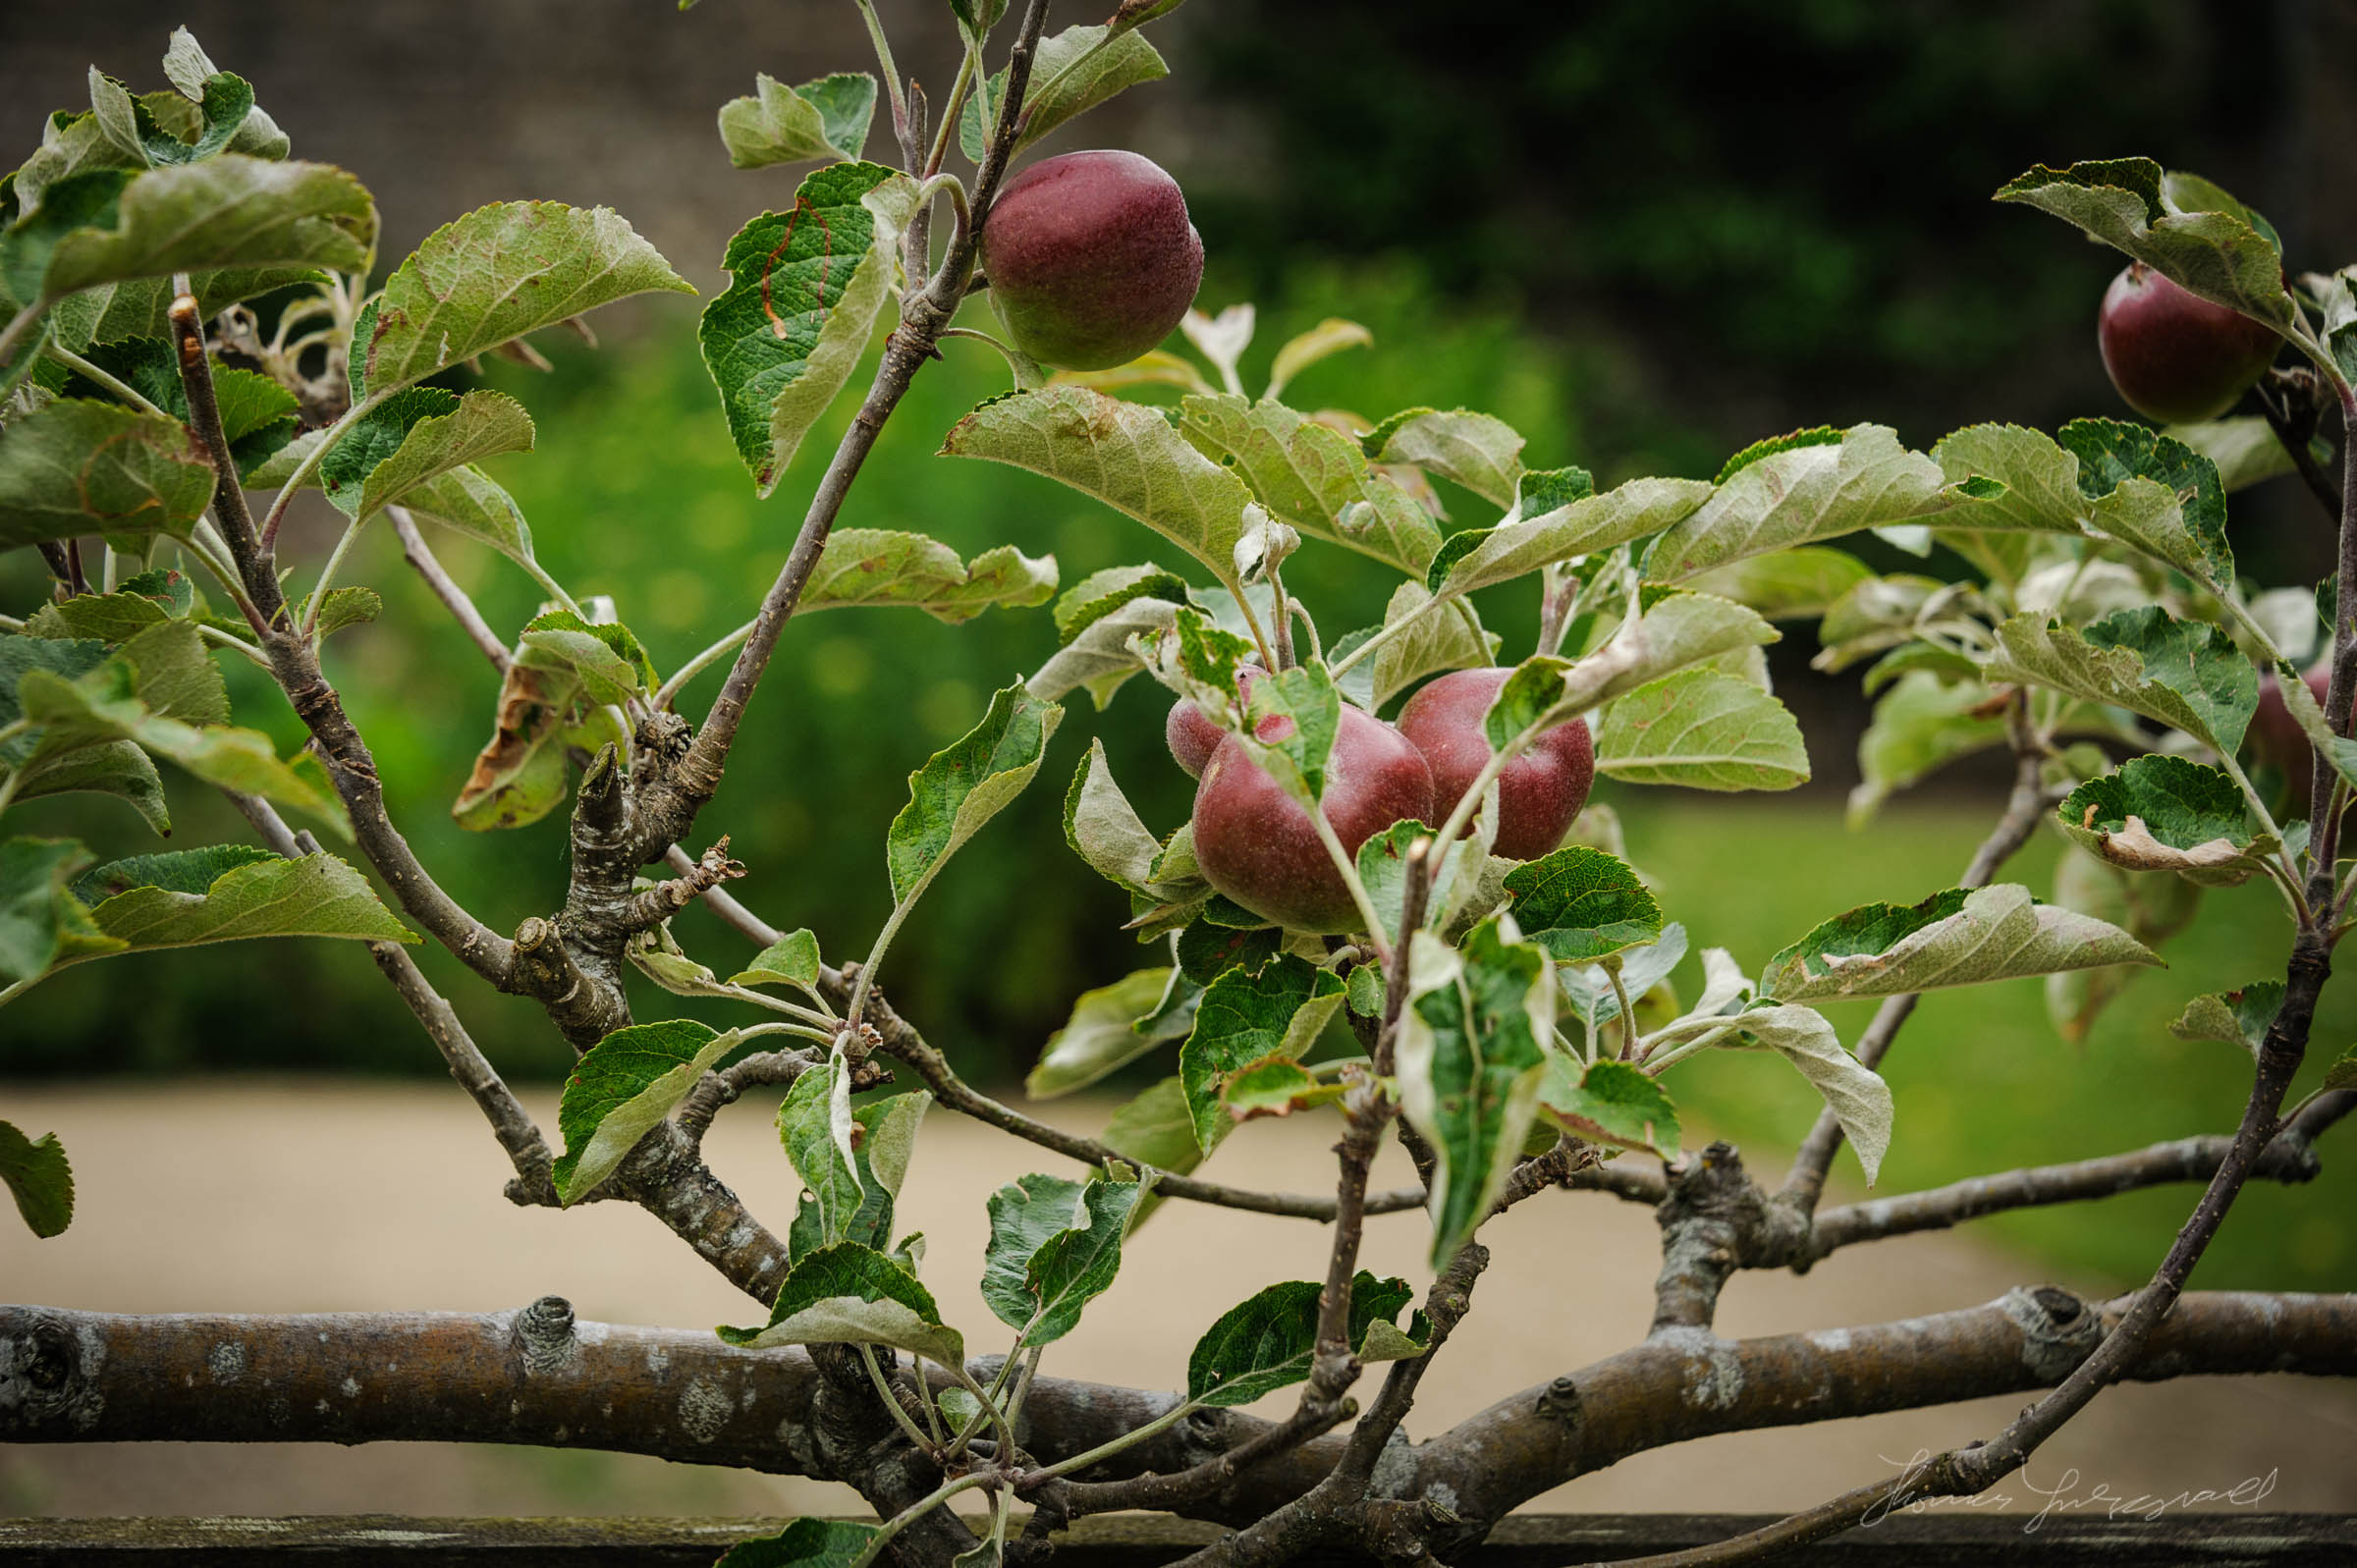 Apple Trees and young apples